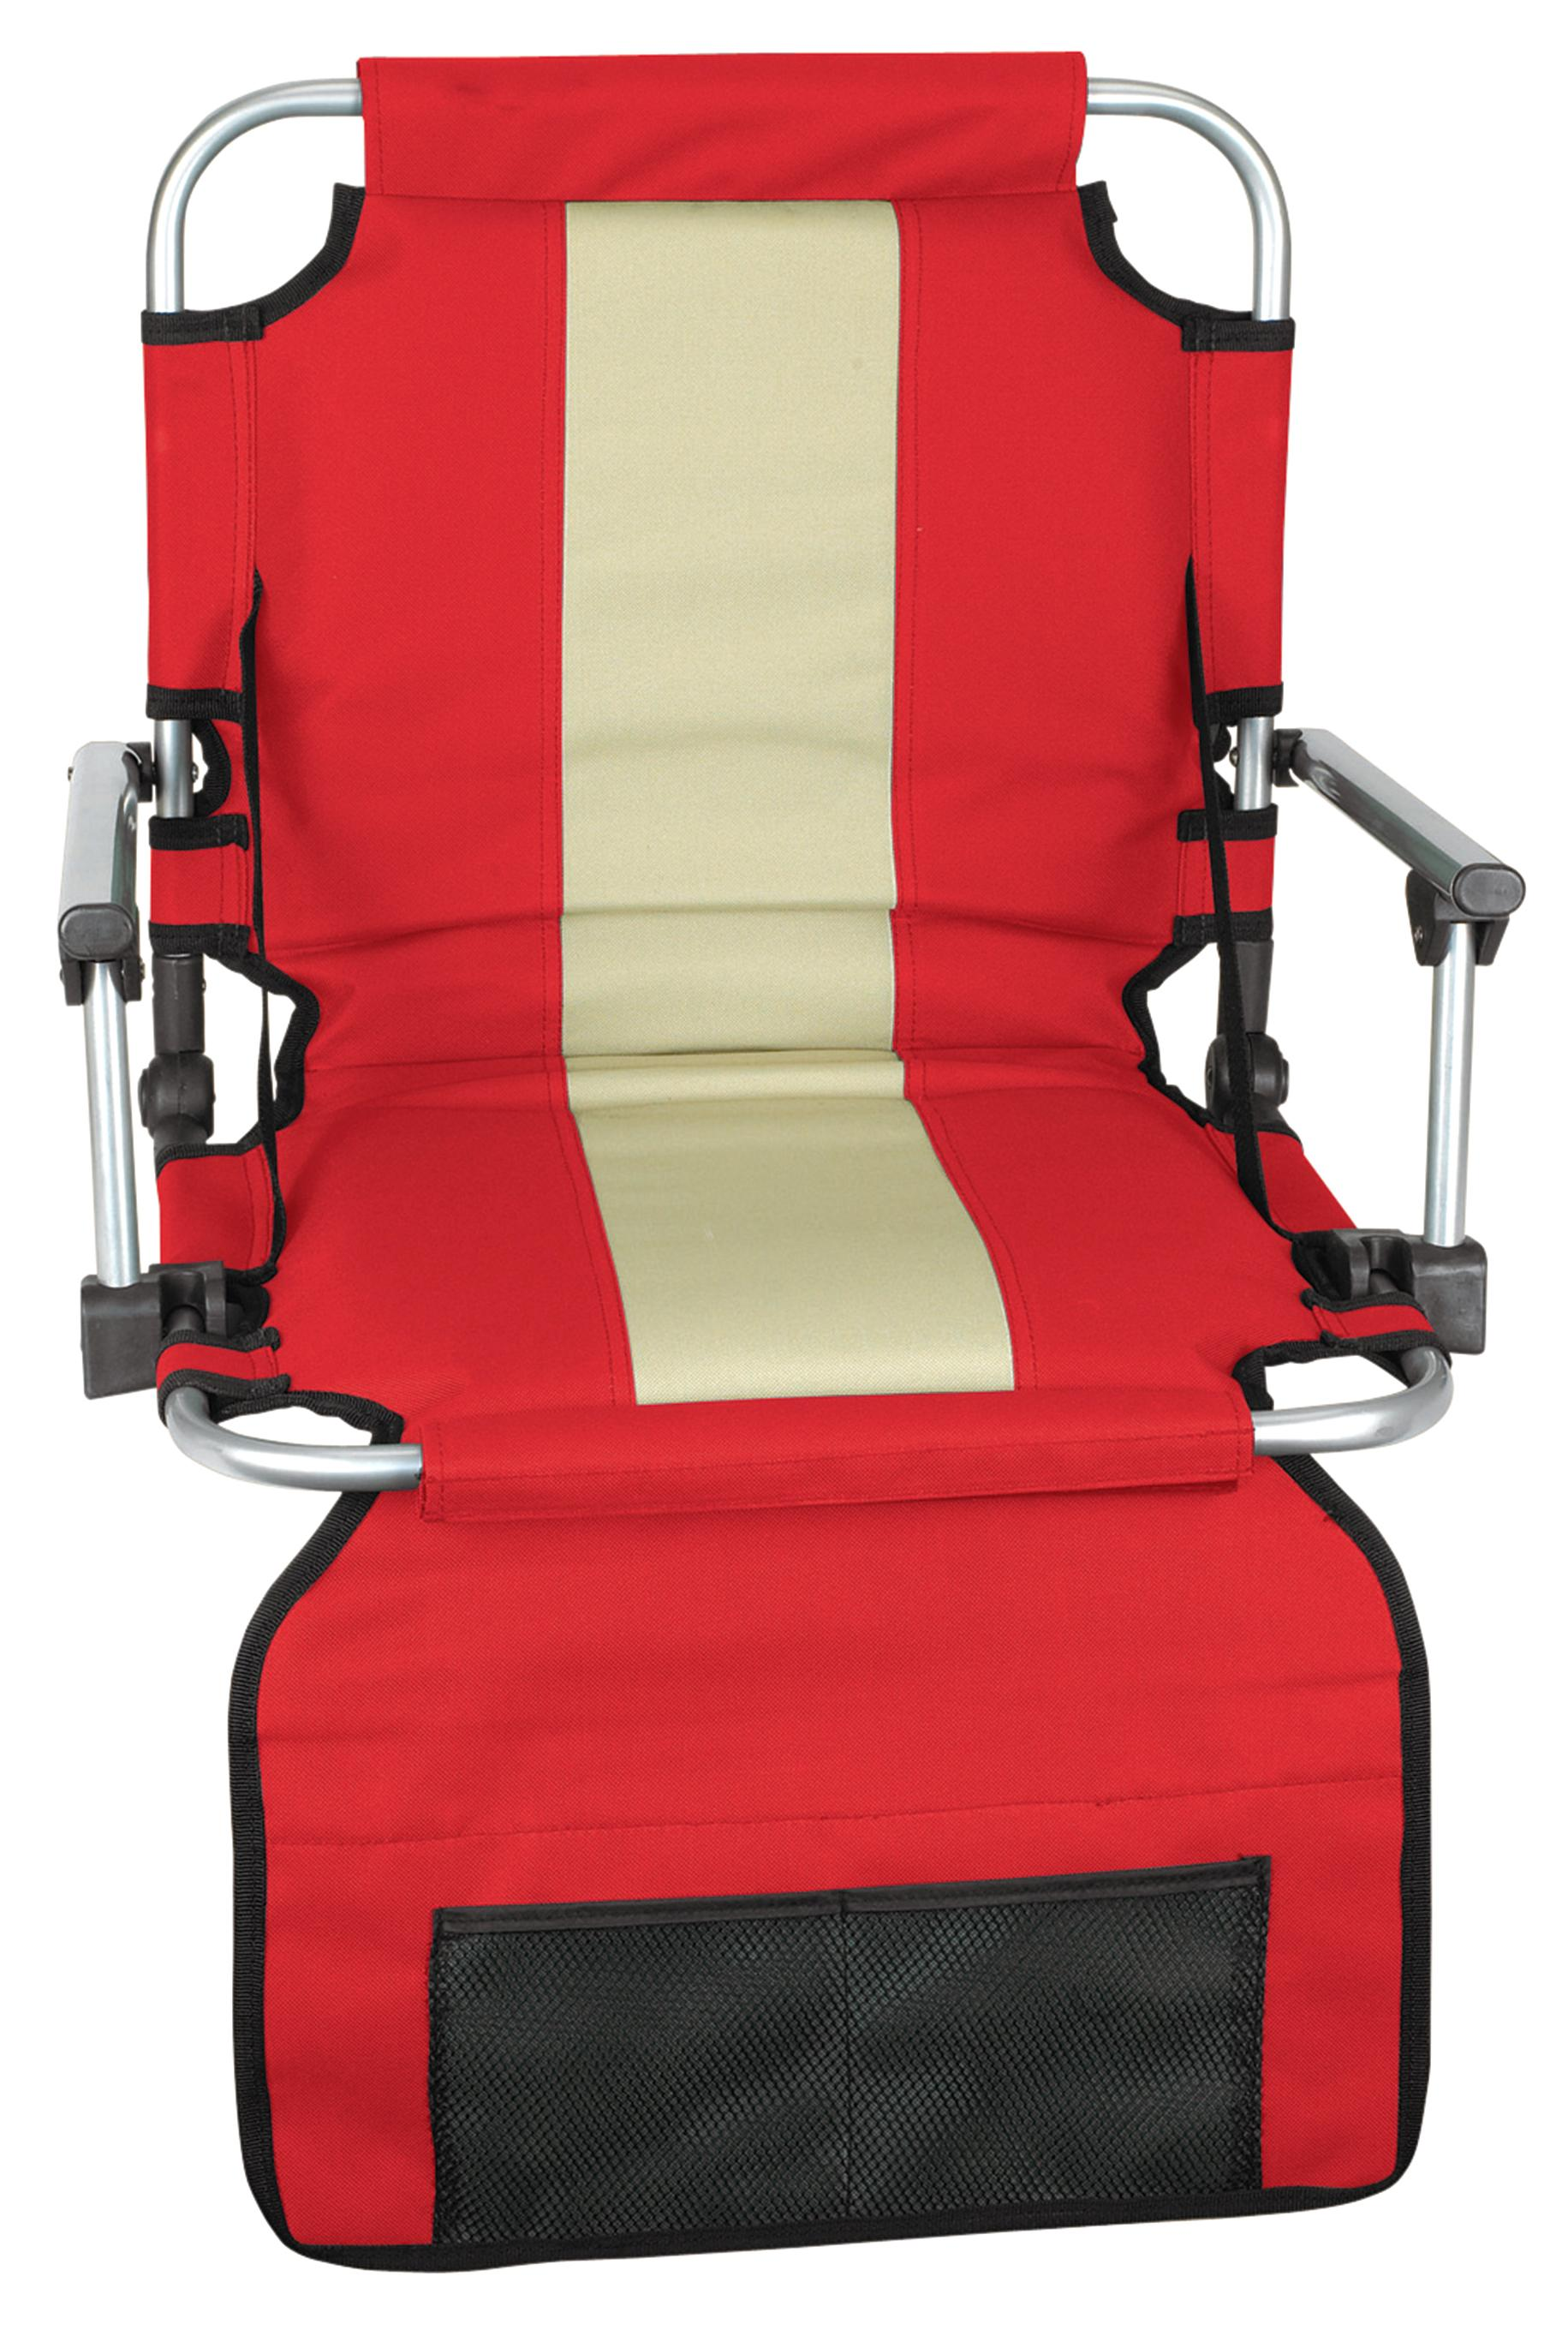 Stansport Folding Stadium Seat with Arms Amazon Sports & Outdoors